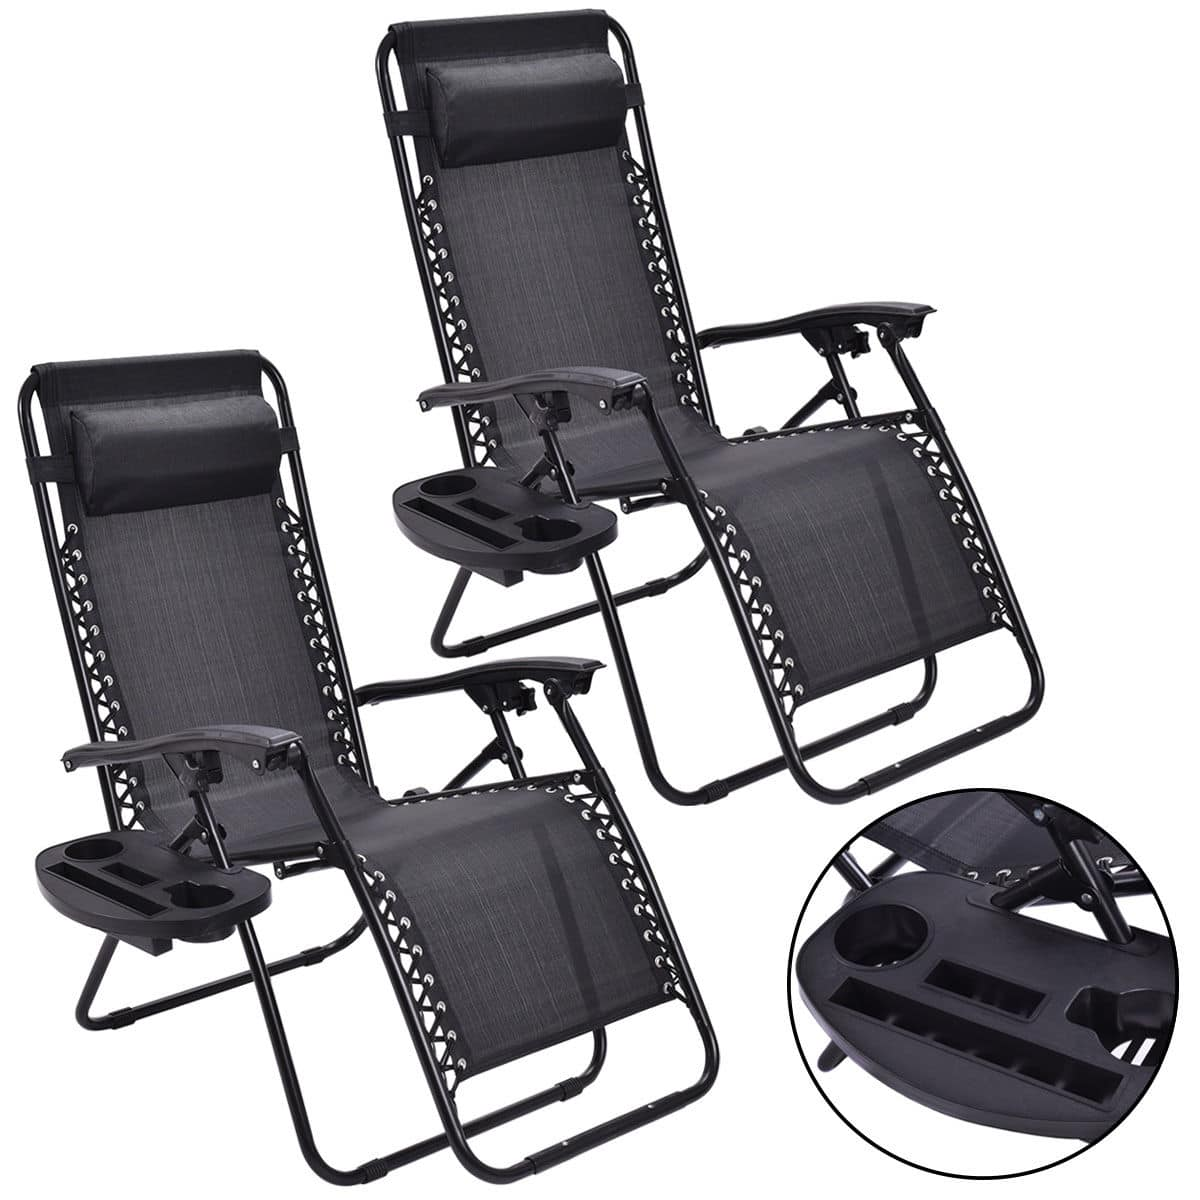 2-Pack of Zero Gravity Black Lounge Patio Chairs with Cupholder for $49.99 (or less) + Free Shipping @ eBay.com